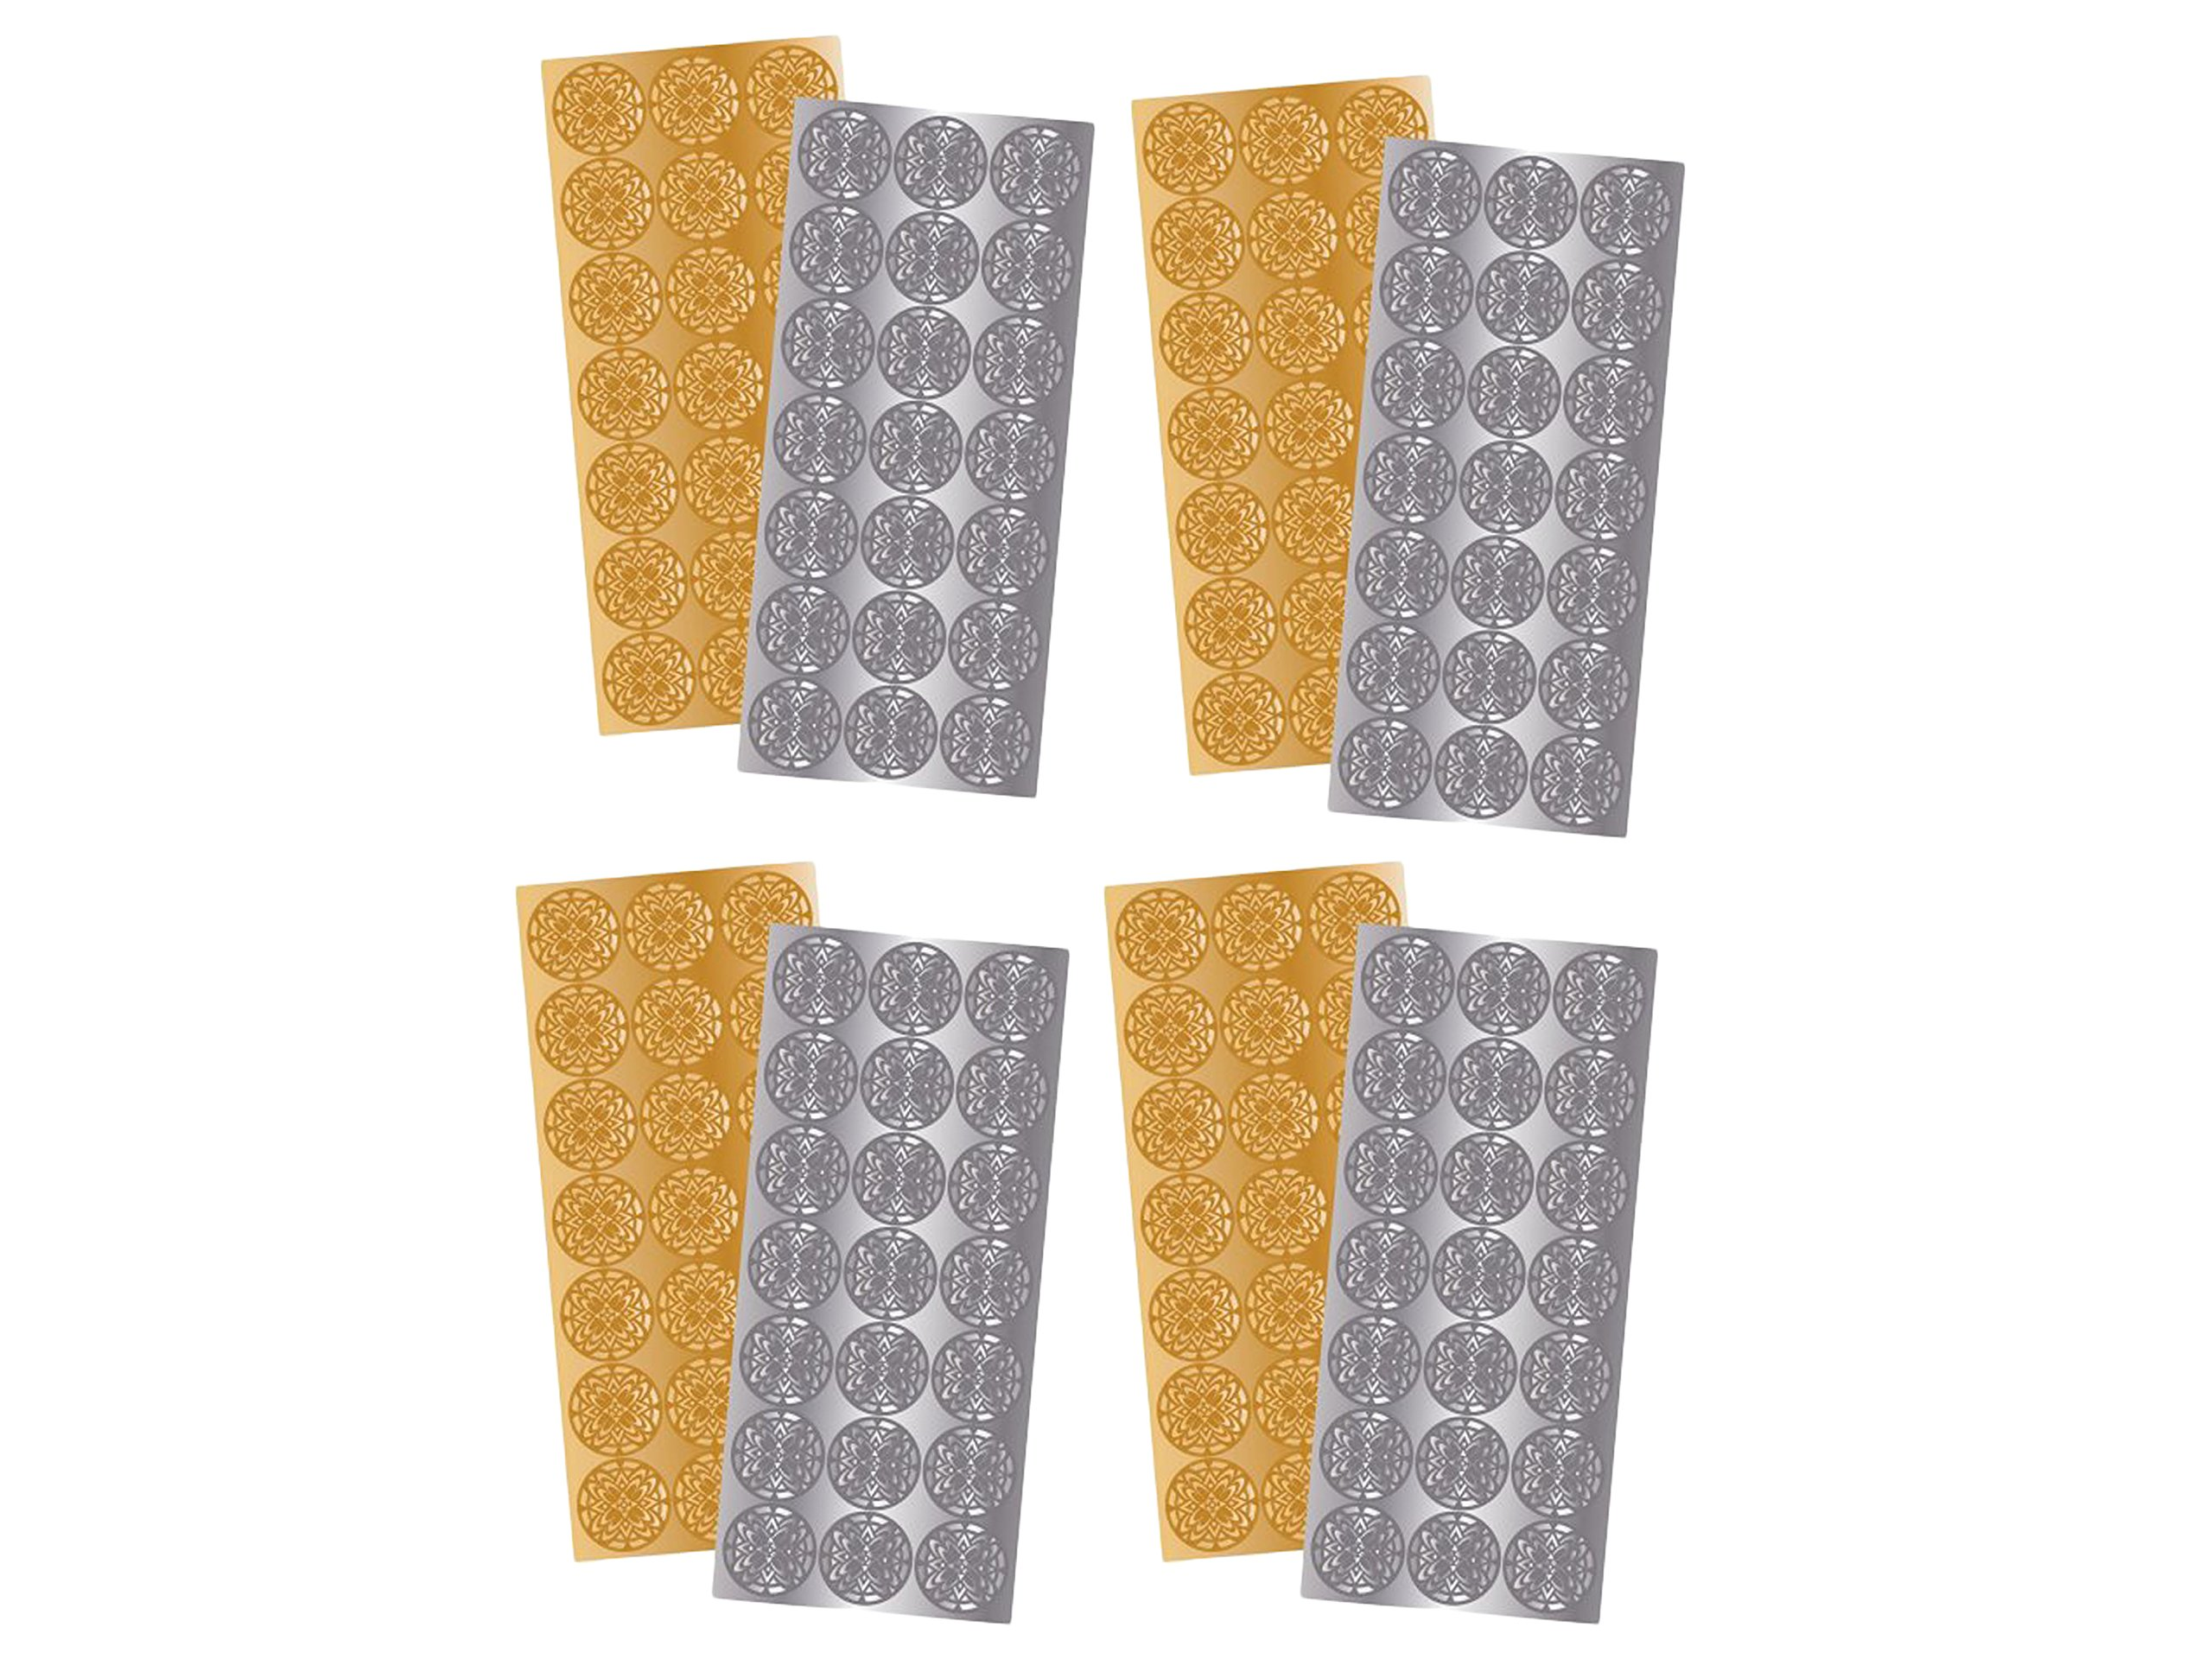 4 Pack of 2 Quality Park 21 Gold and 21 Silver Decorative Foil Envelope Seals by Maven Gifts